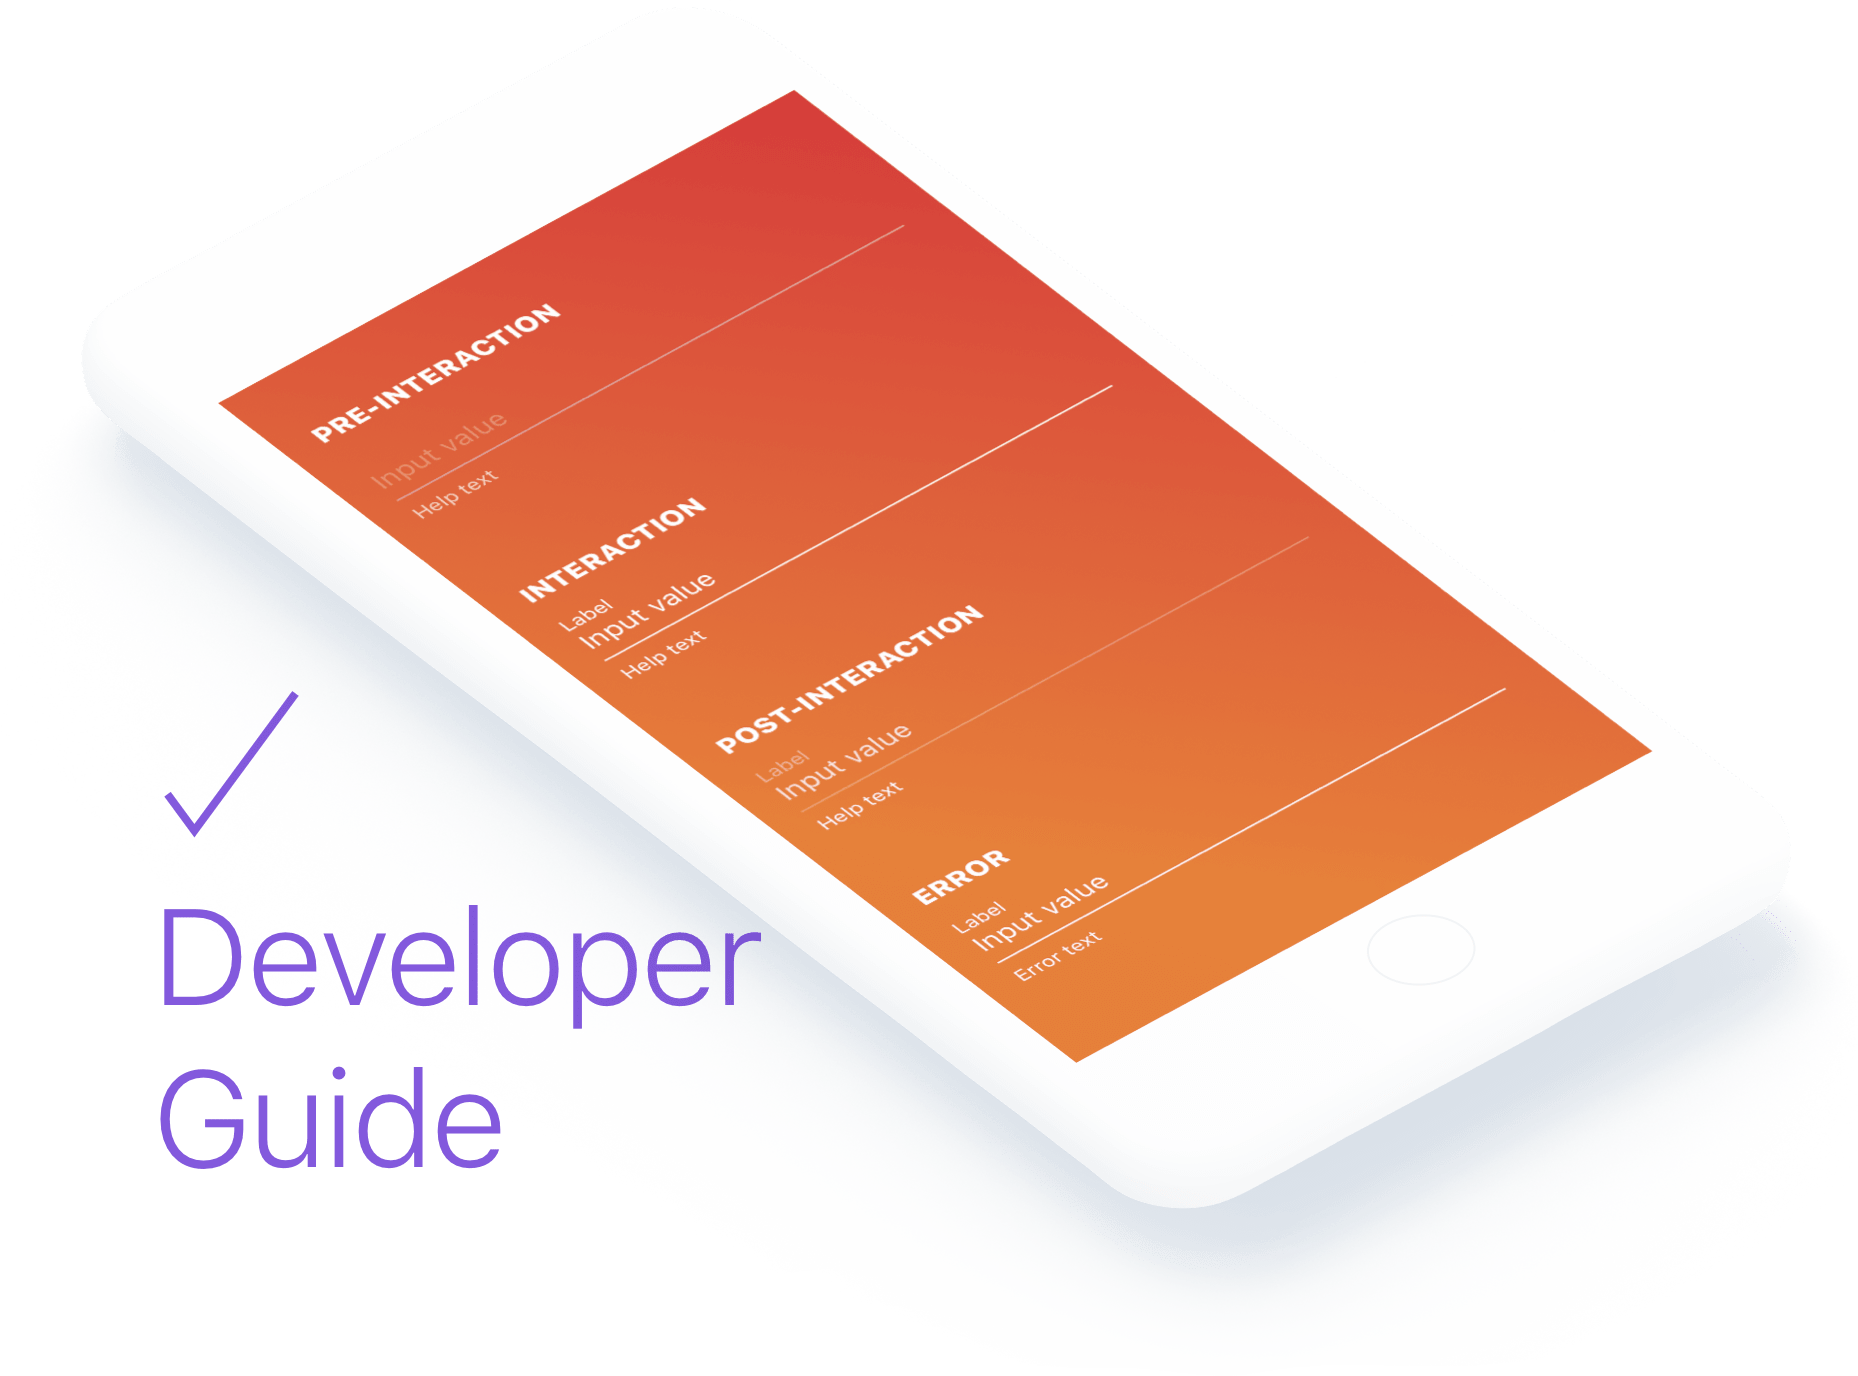 """White phone screen with orange background and white text displays options for """"Pre-interaction,"""" """"Interaction,"""" """"Post-interaction,"""" and """"Error."""" Next to the screen in purple reads """"Developer Guide"""" with a purple check mark above it."""